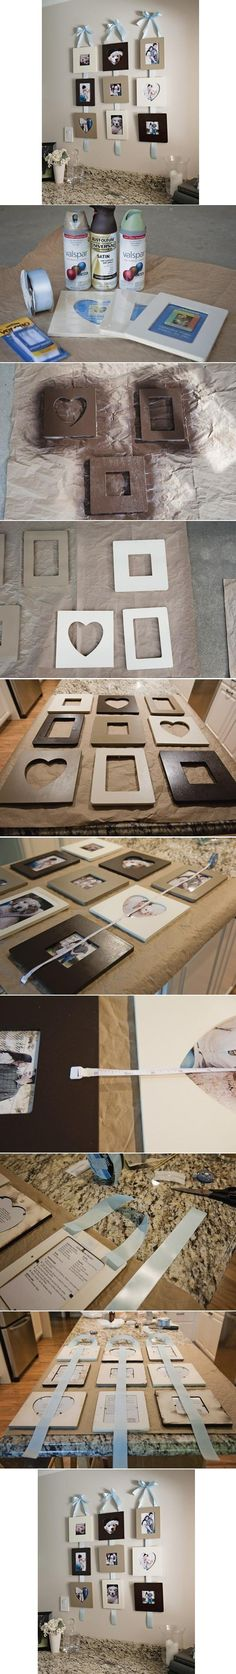 #DIY Stylish Wall Photo Frame #Crafts